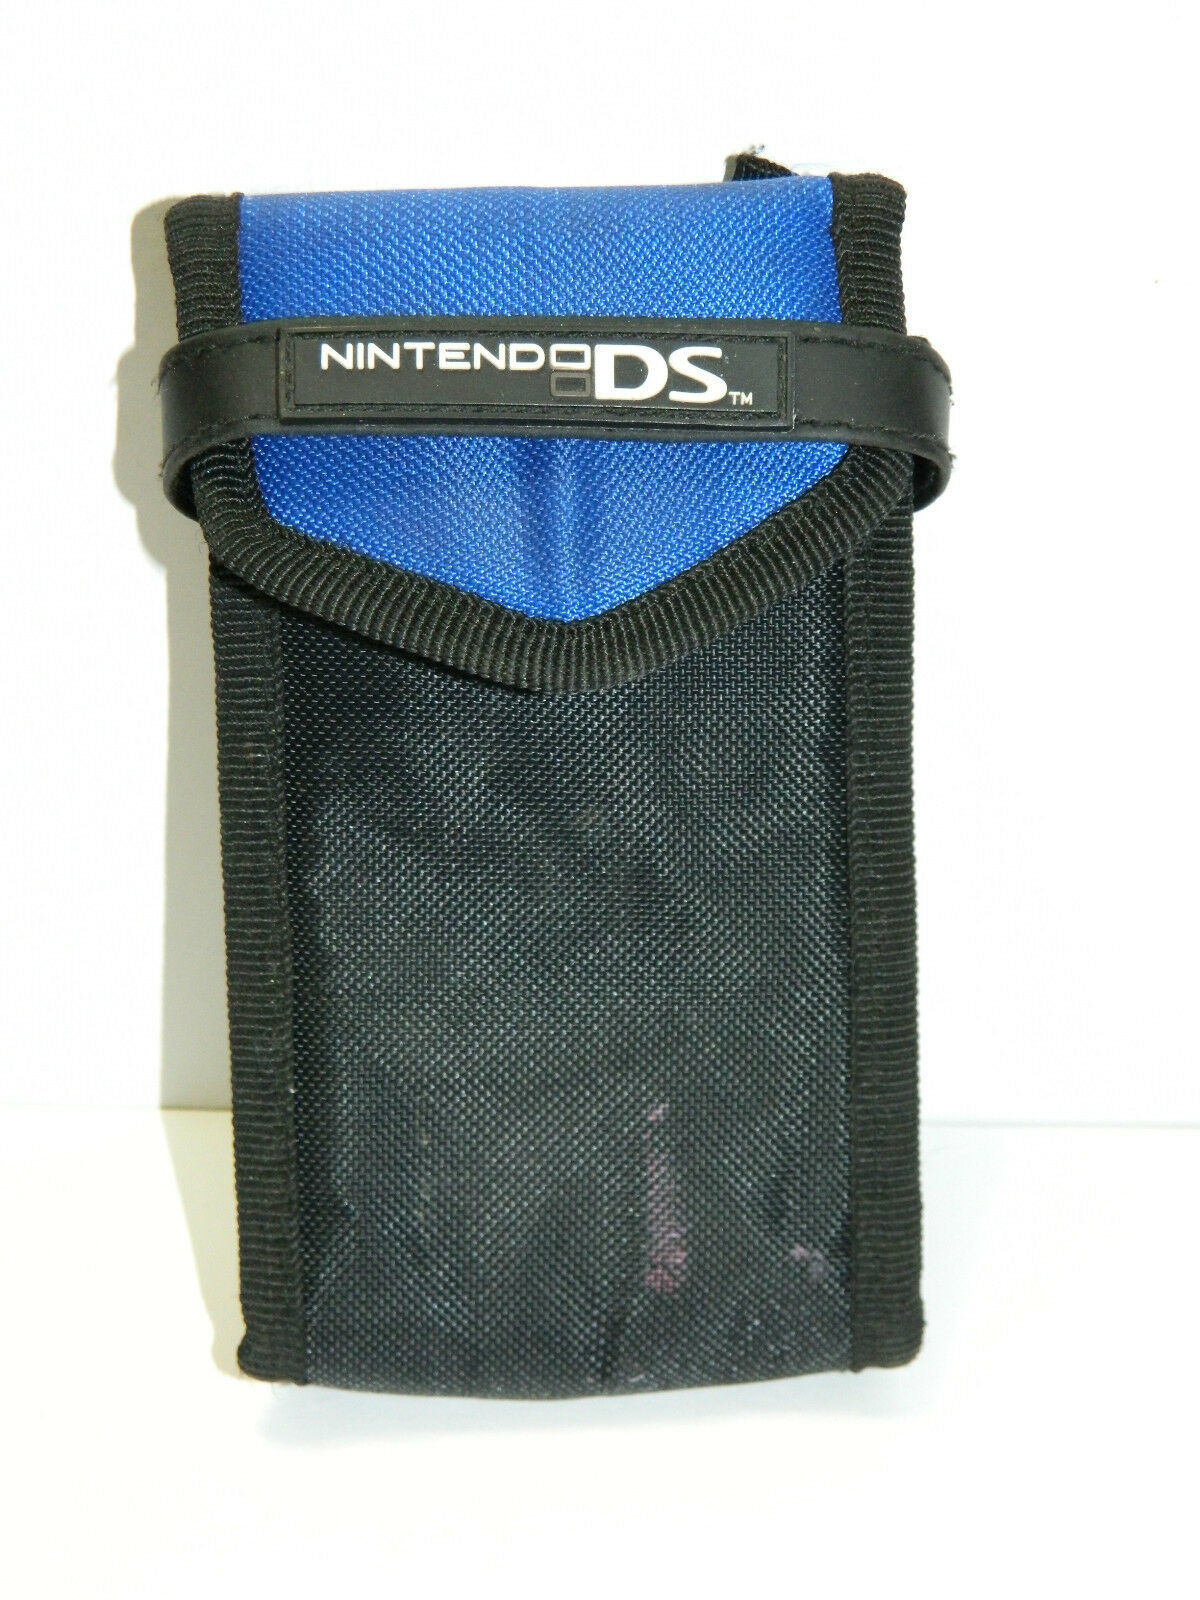 Primary image for NINTENDO DS CARRYING CASE, BLACK & BLUE, USED, IN DECENT CONDITION, SHIPS NOW!